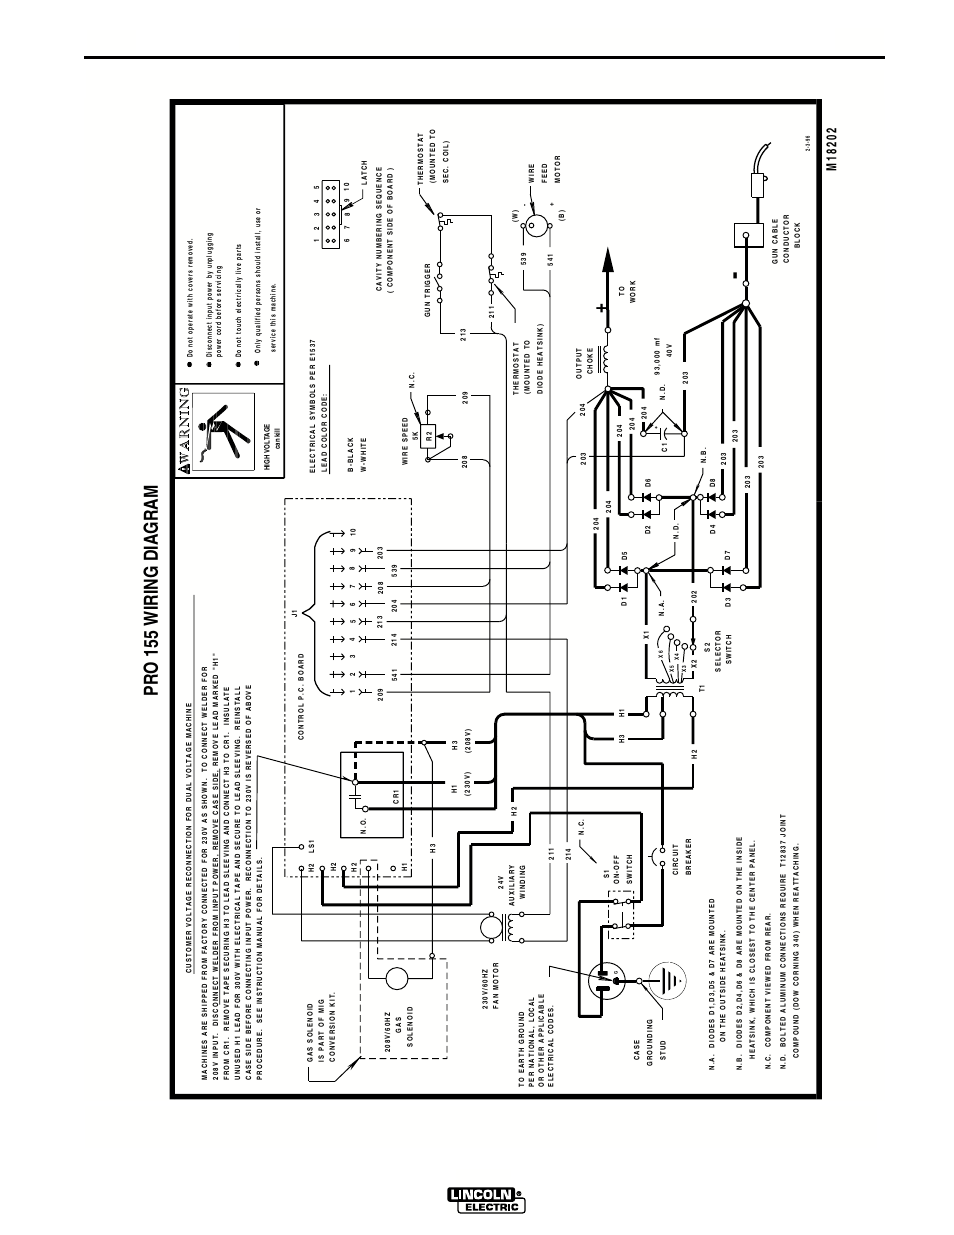 Lincoln 140c Mig Welder Wiring Diagram on jeep grand cherokee instrument cluster wiring diagram new